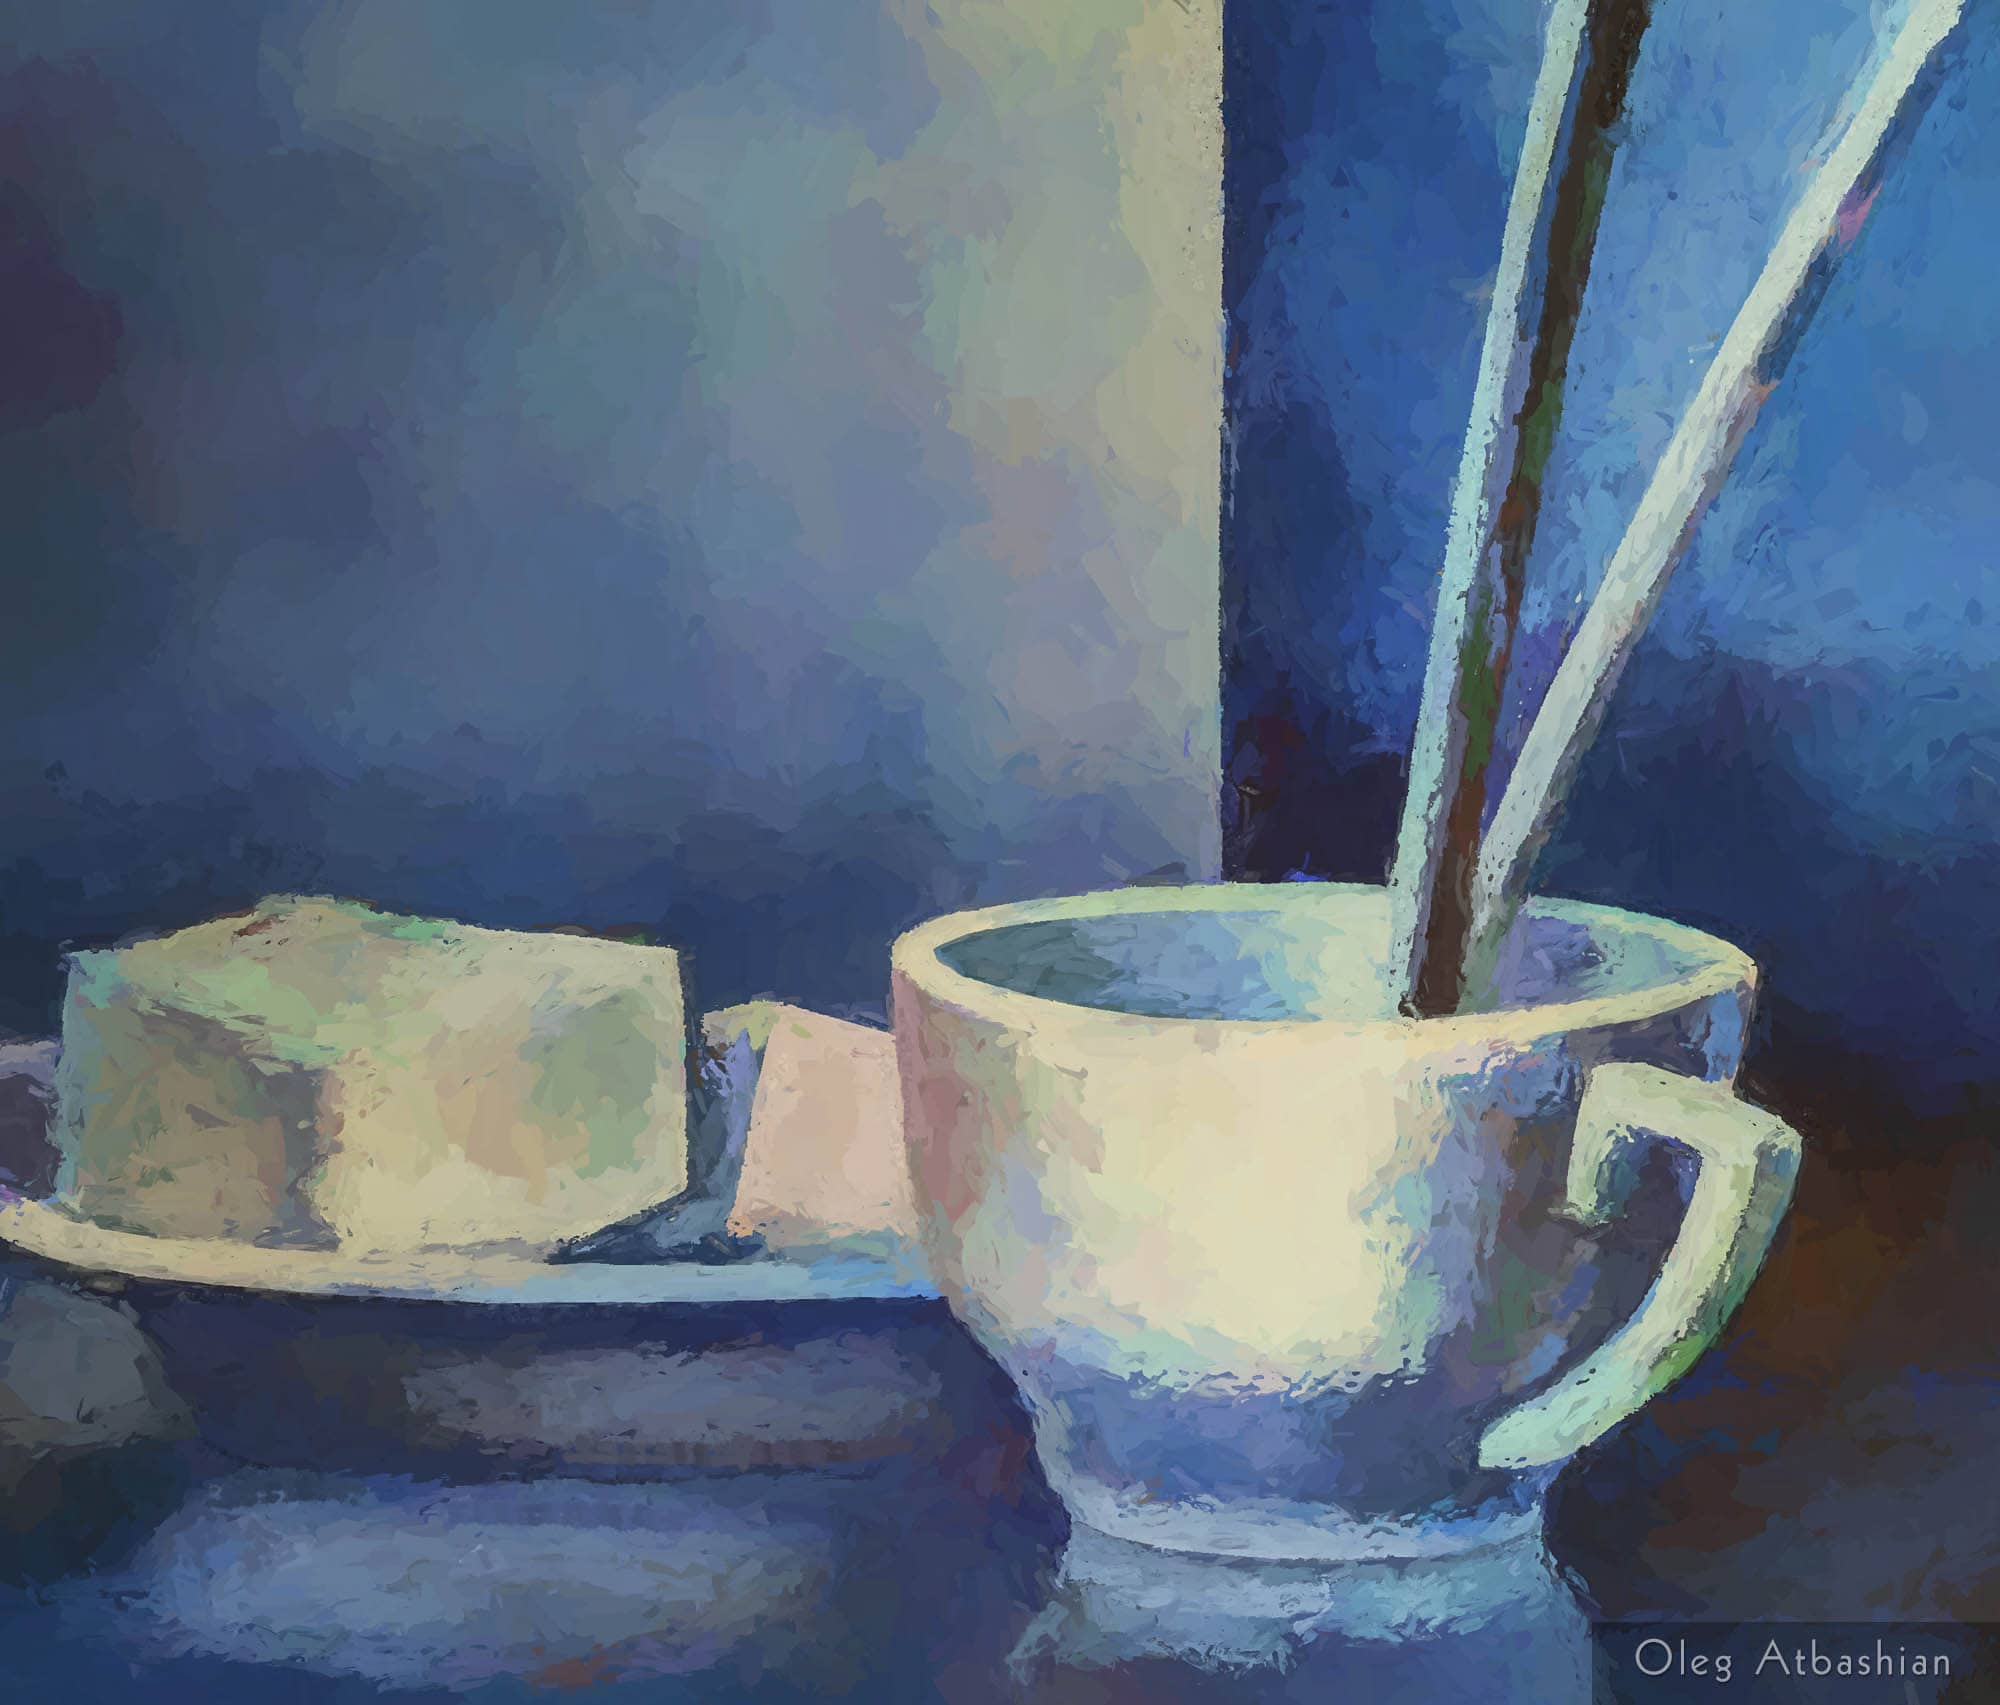 Breakfast of an Artist: Still Life with a Morning Cup of Tea